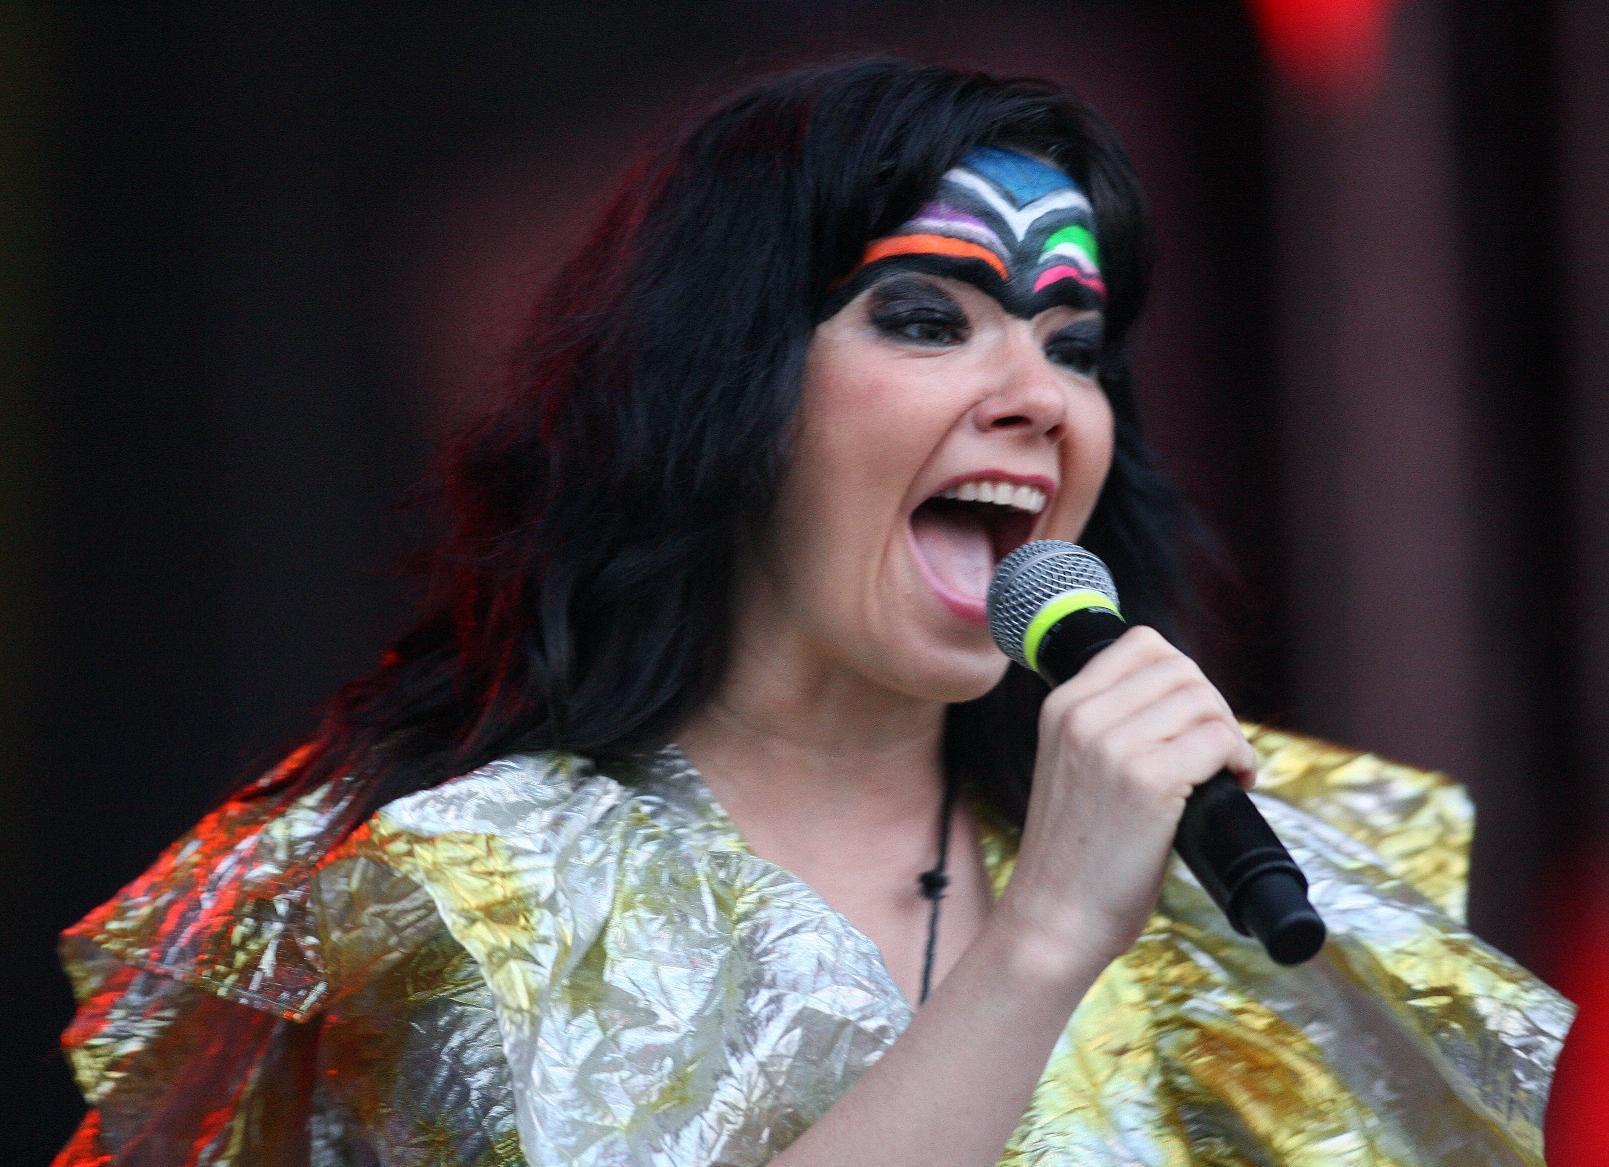 Bjork won't stream breakup album